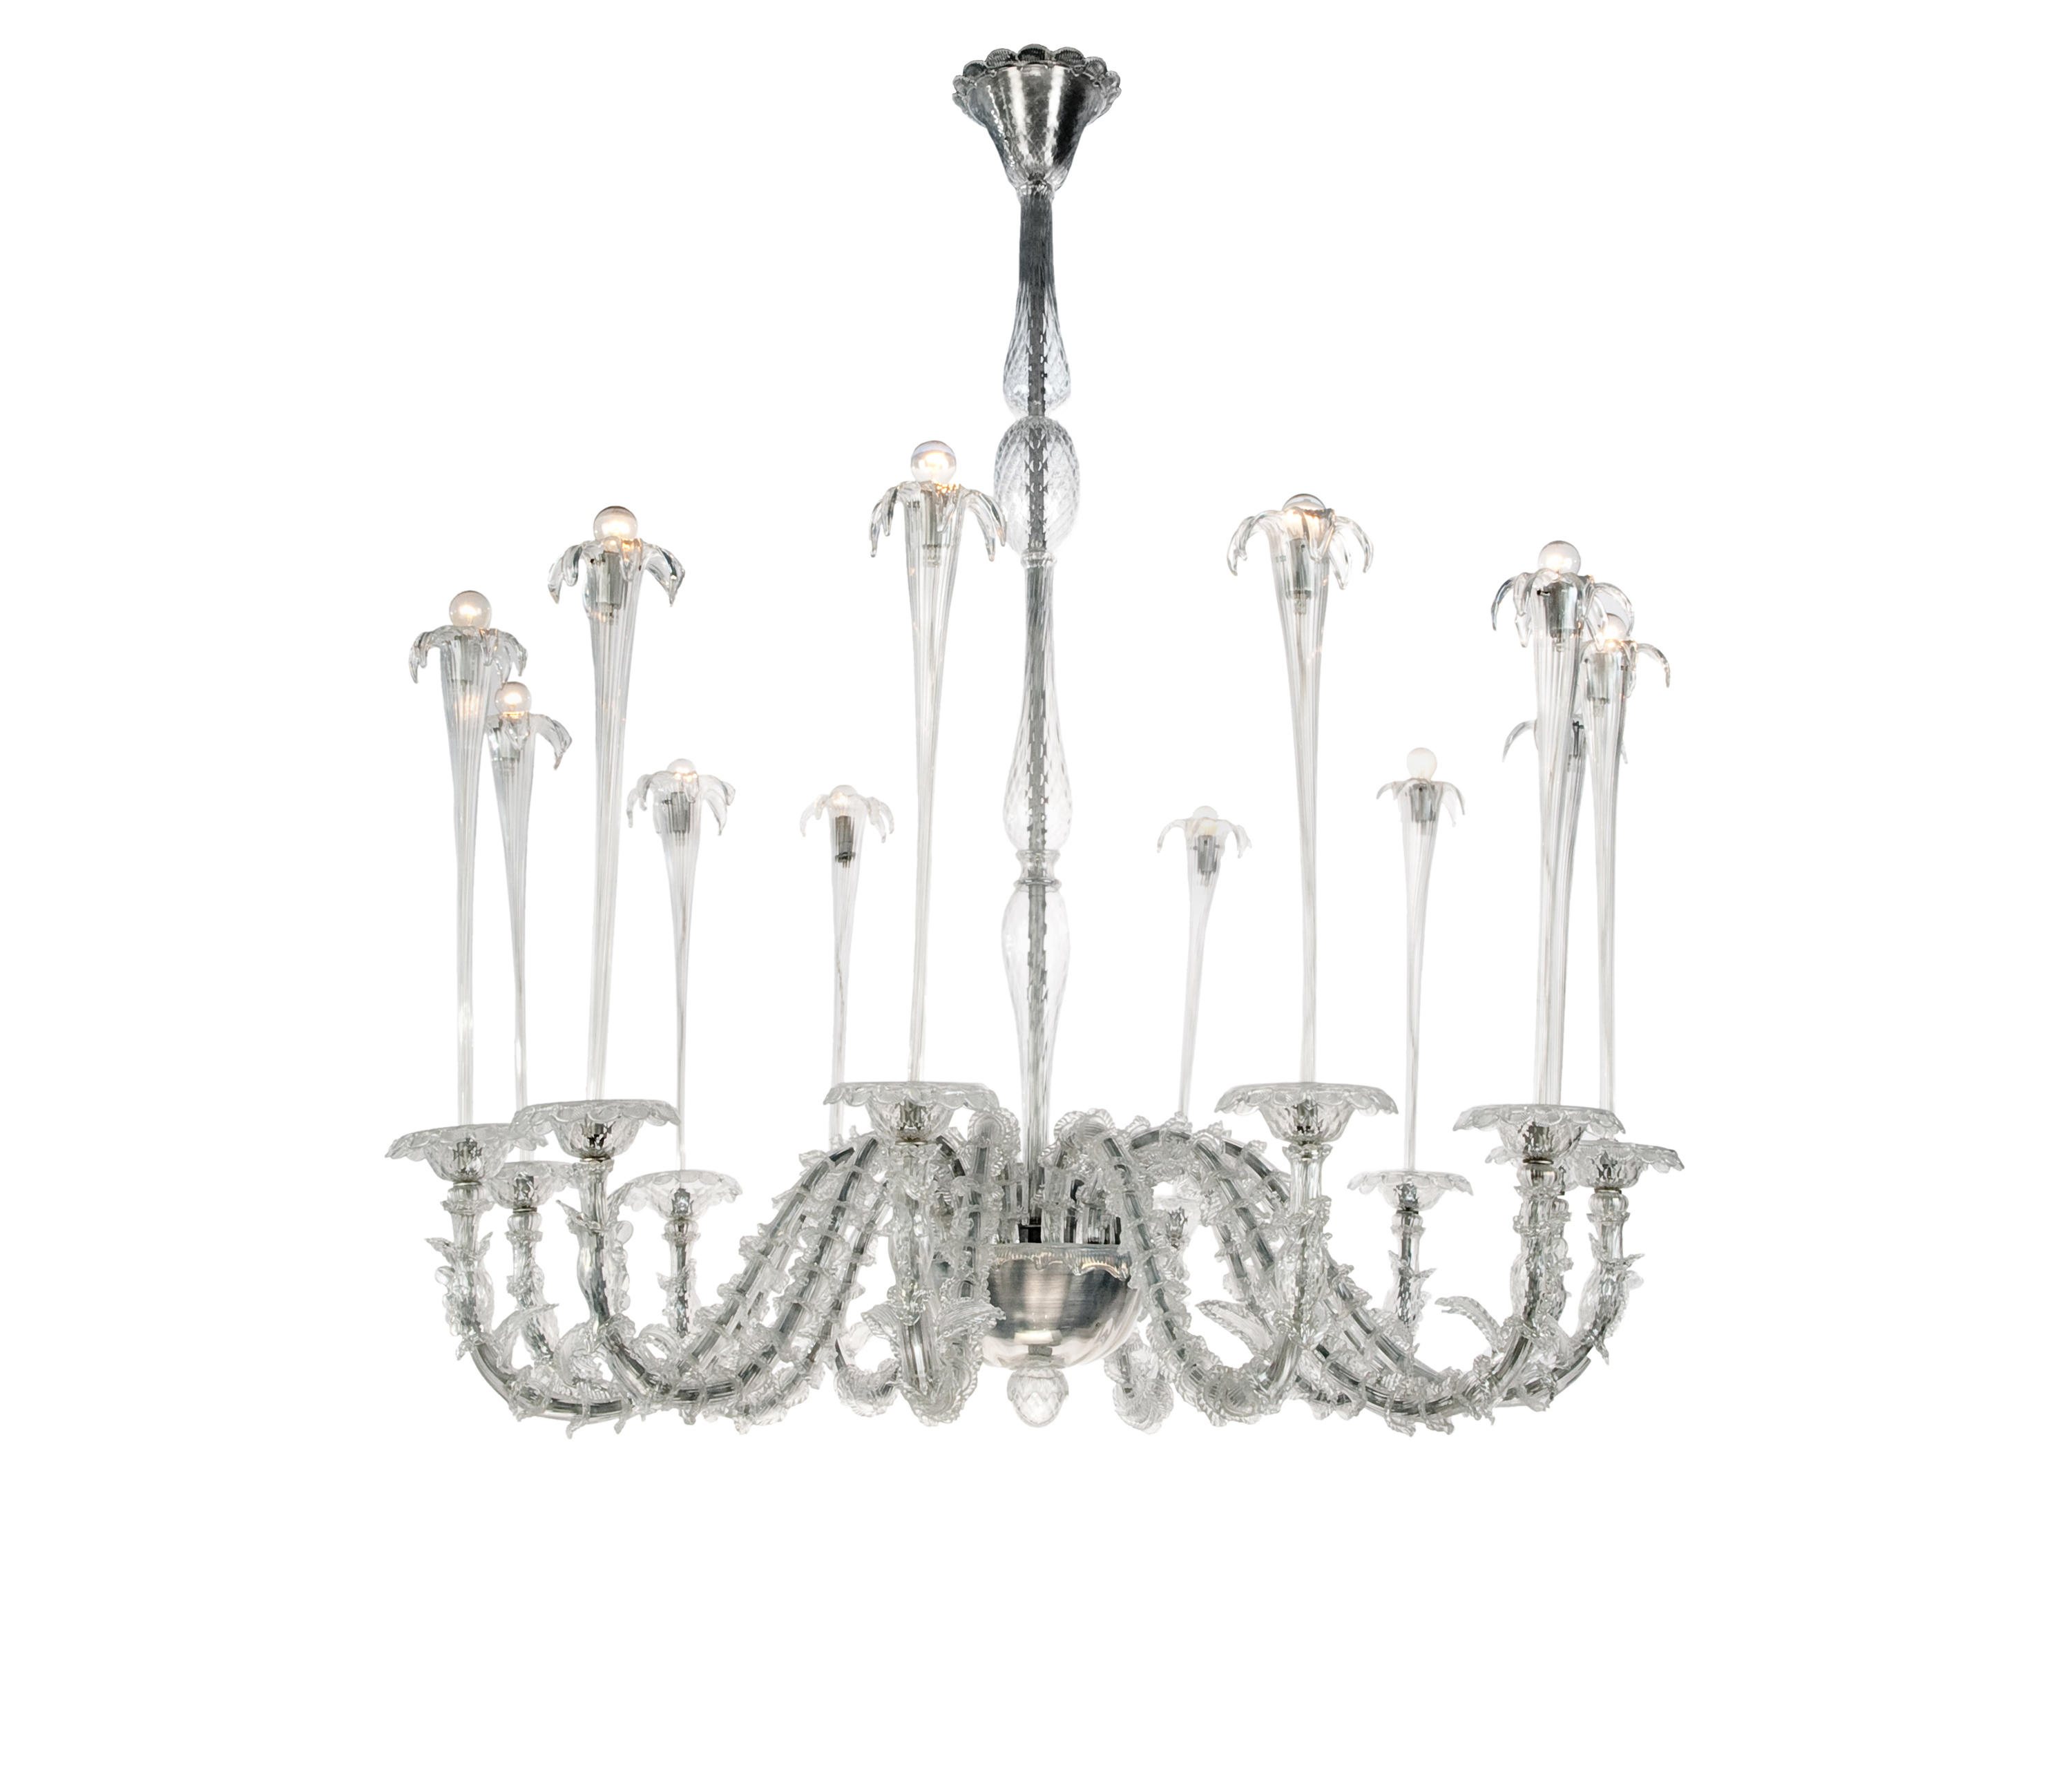 Perfect Jets d ueau by VERONESE Ceiling suspended chandeliers